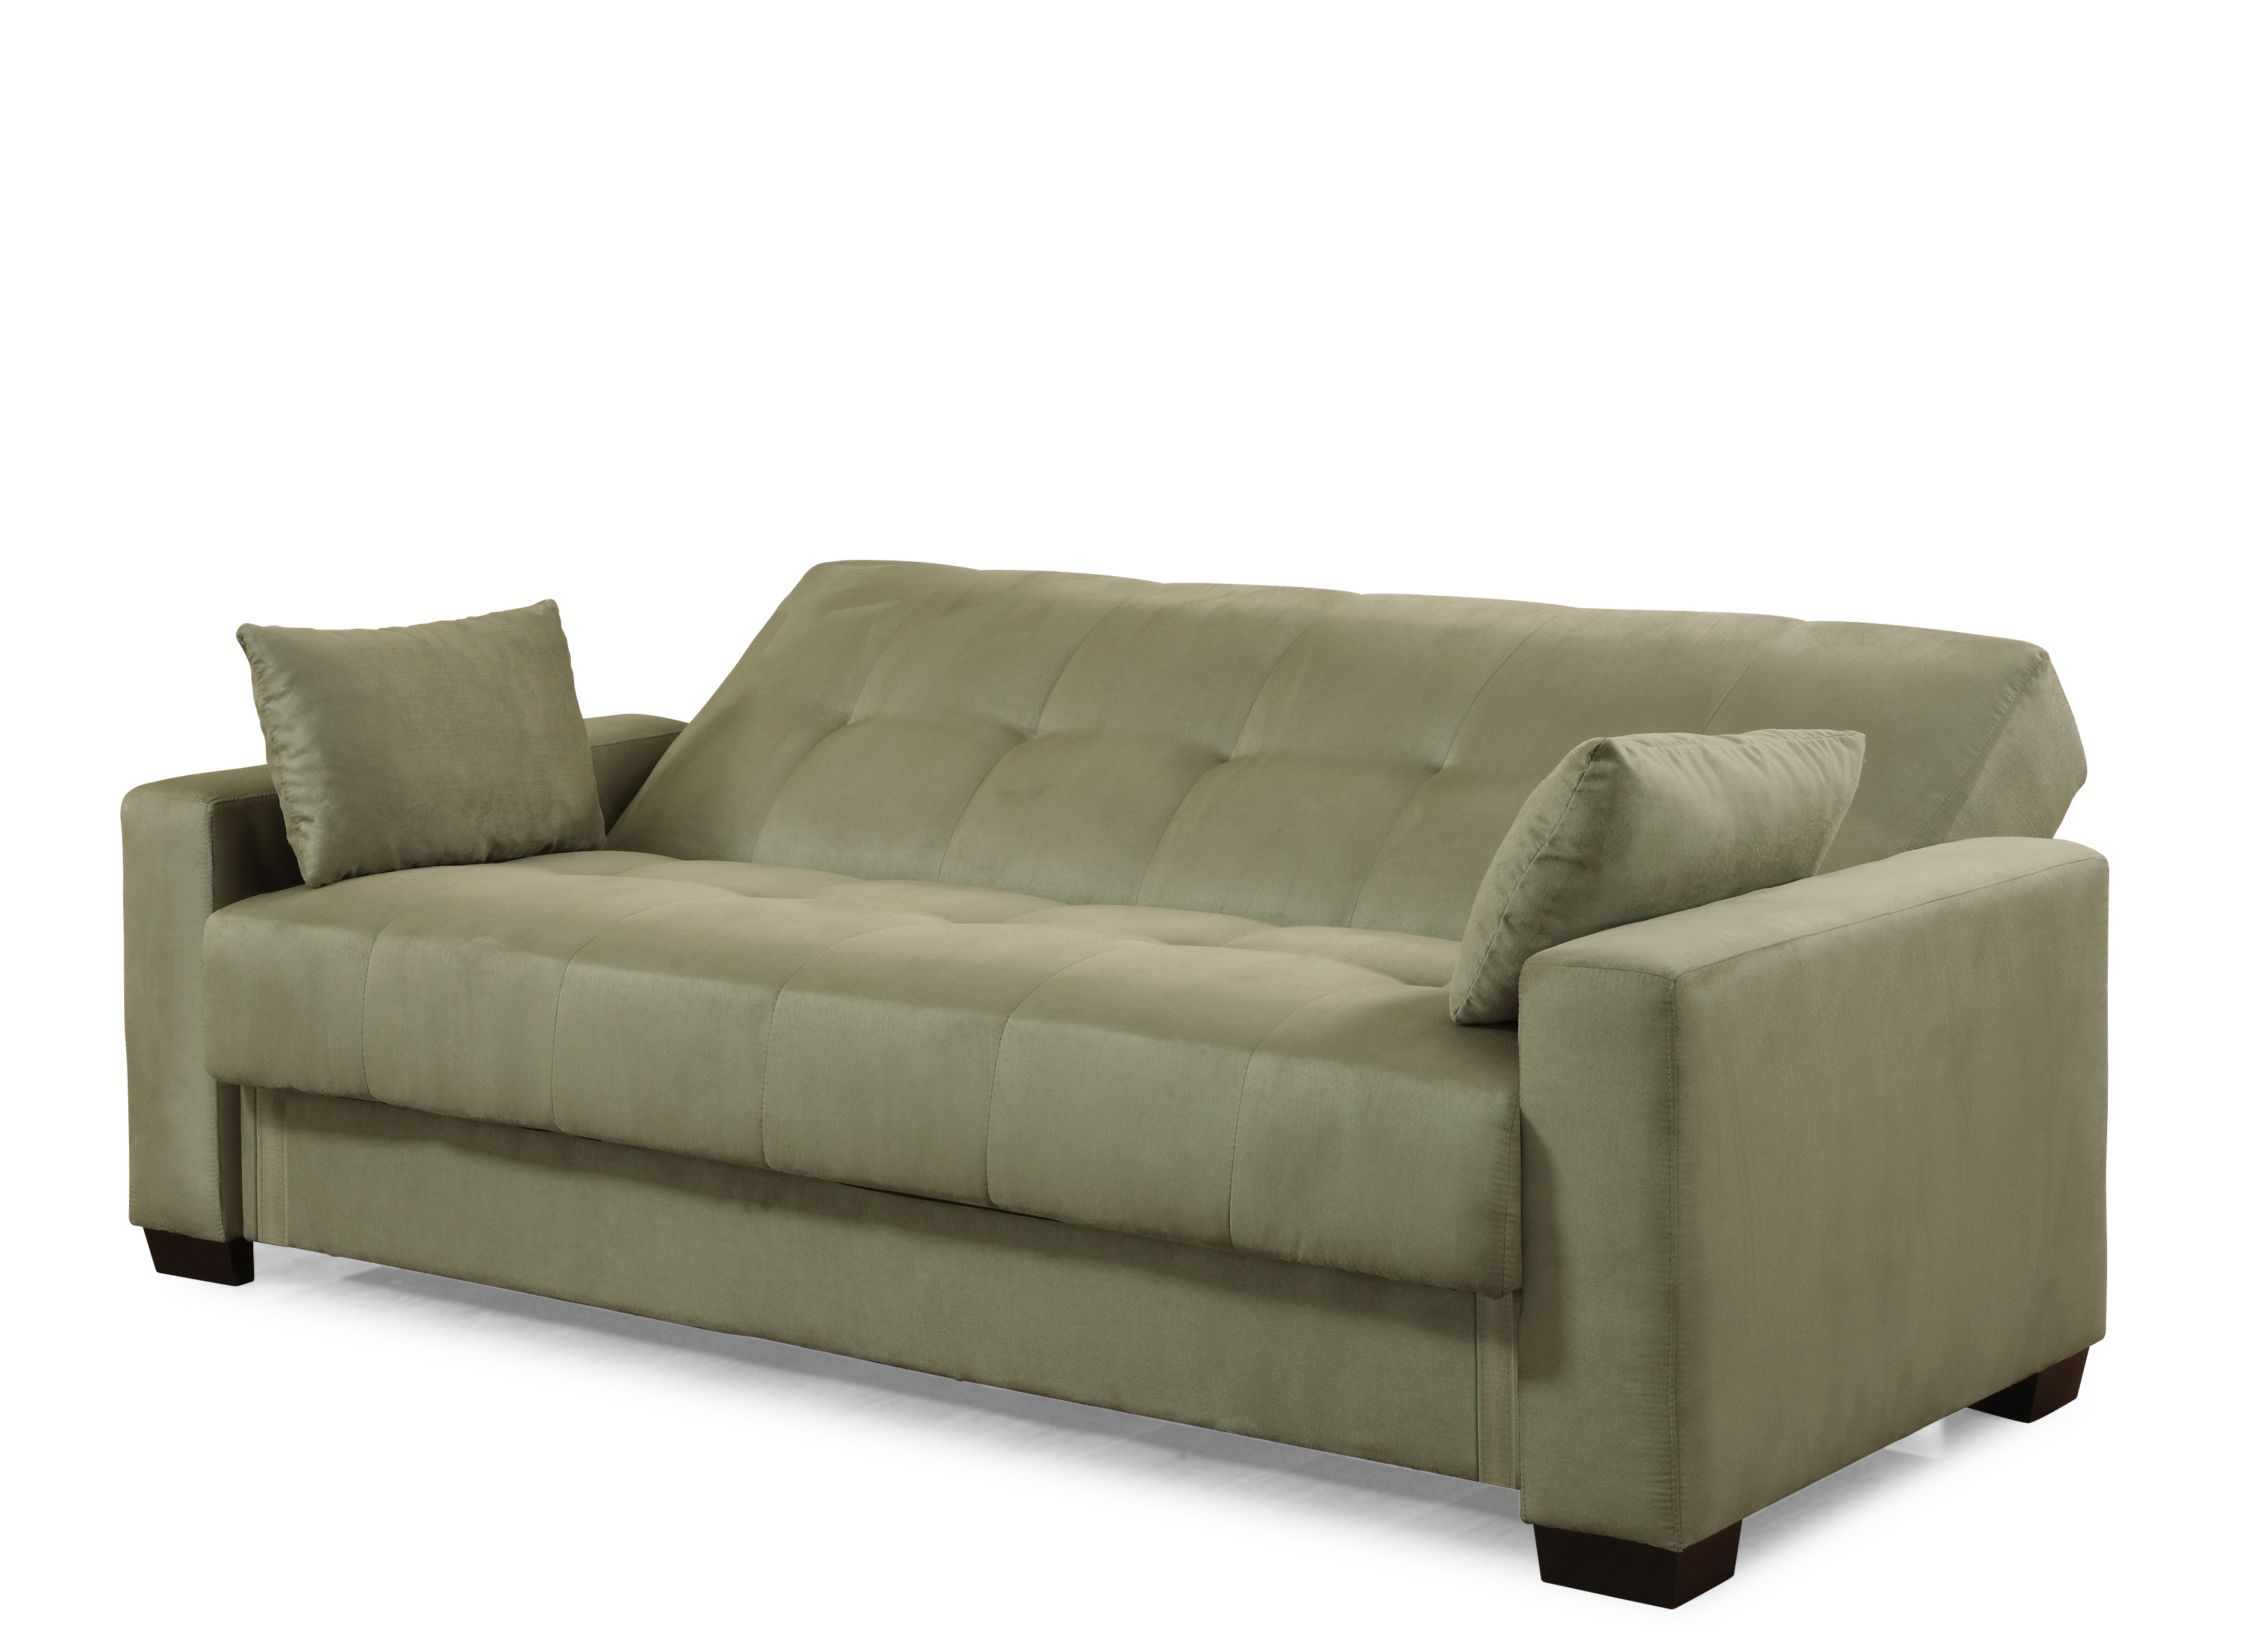 Good Klik Klak Sofa 44 With Additional Modern Sofa Inspiration with Klik Klak Sofa